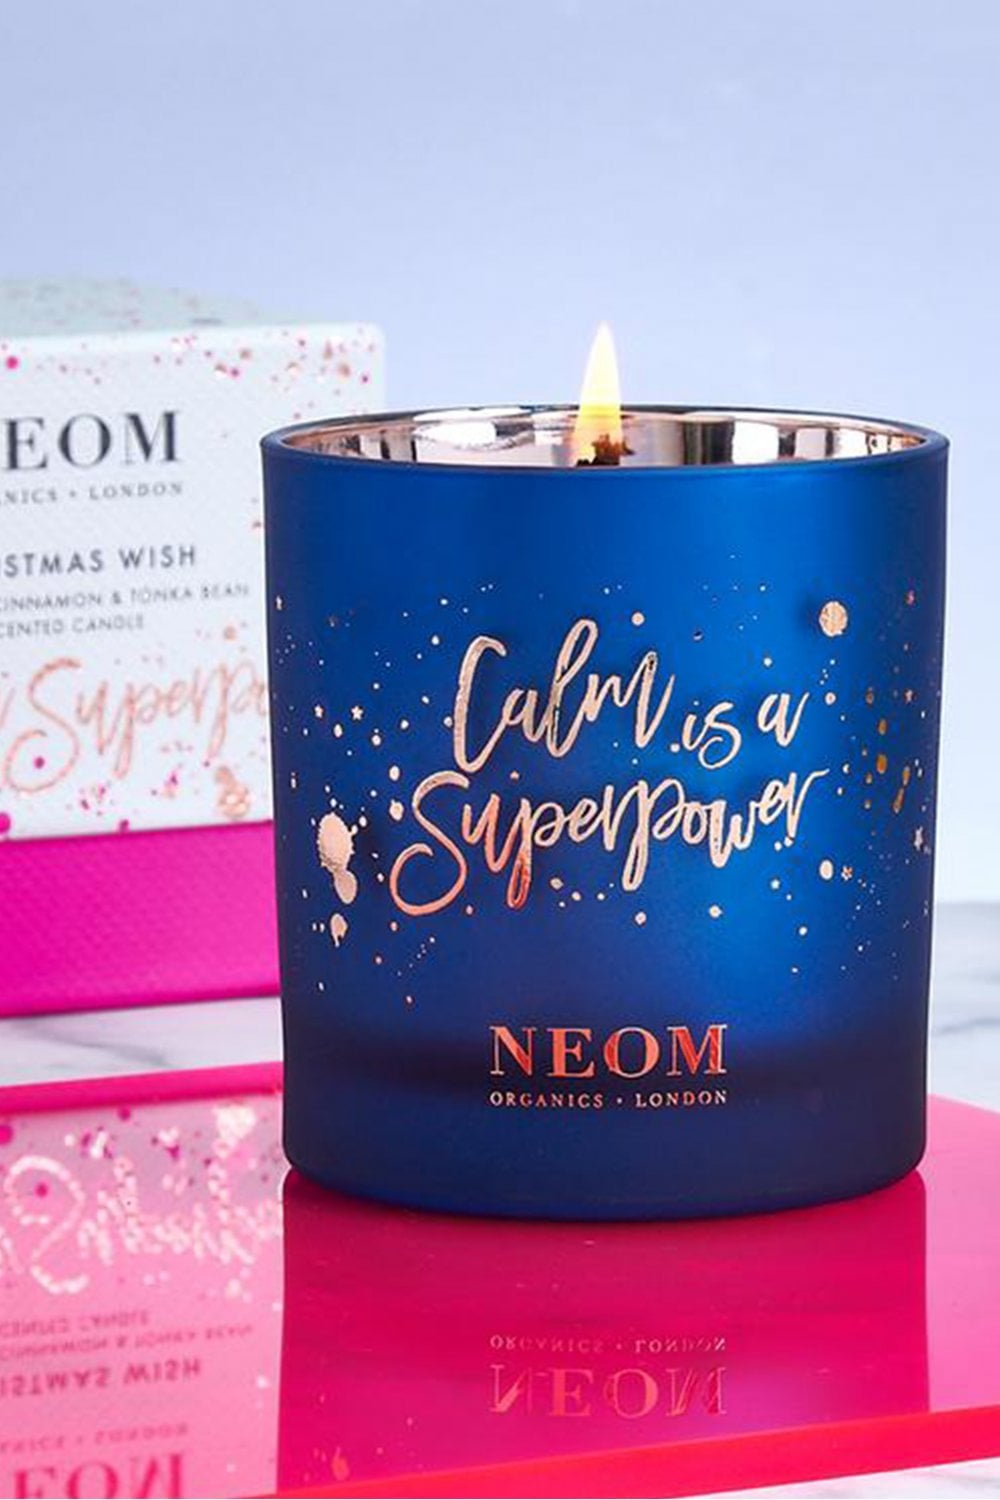 Neom Organics London Christmas Wish Scented Candle At Sue Parkinson